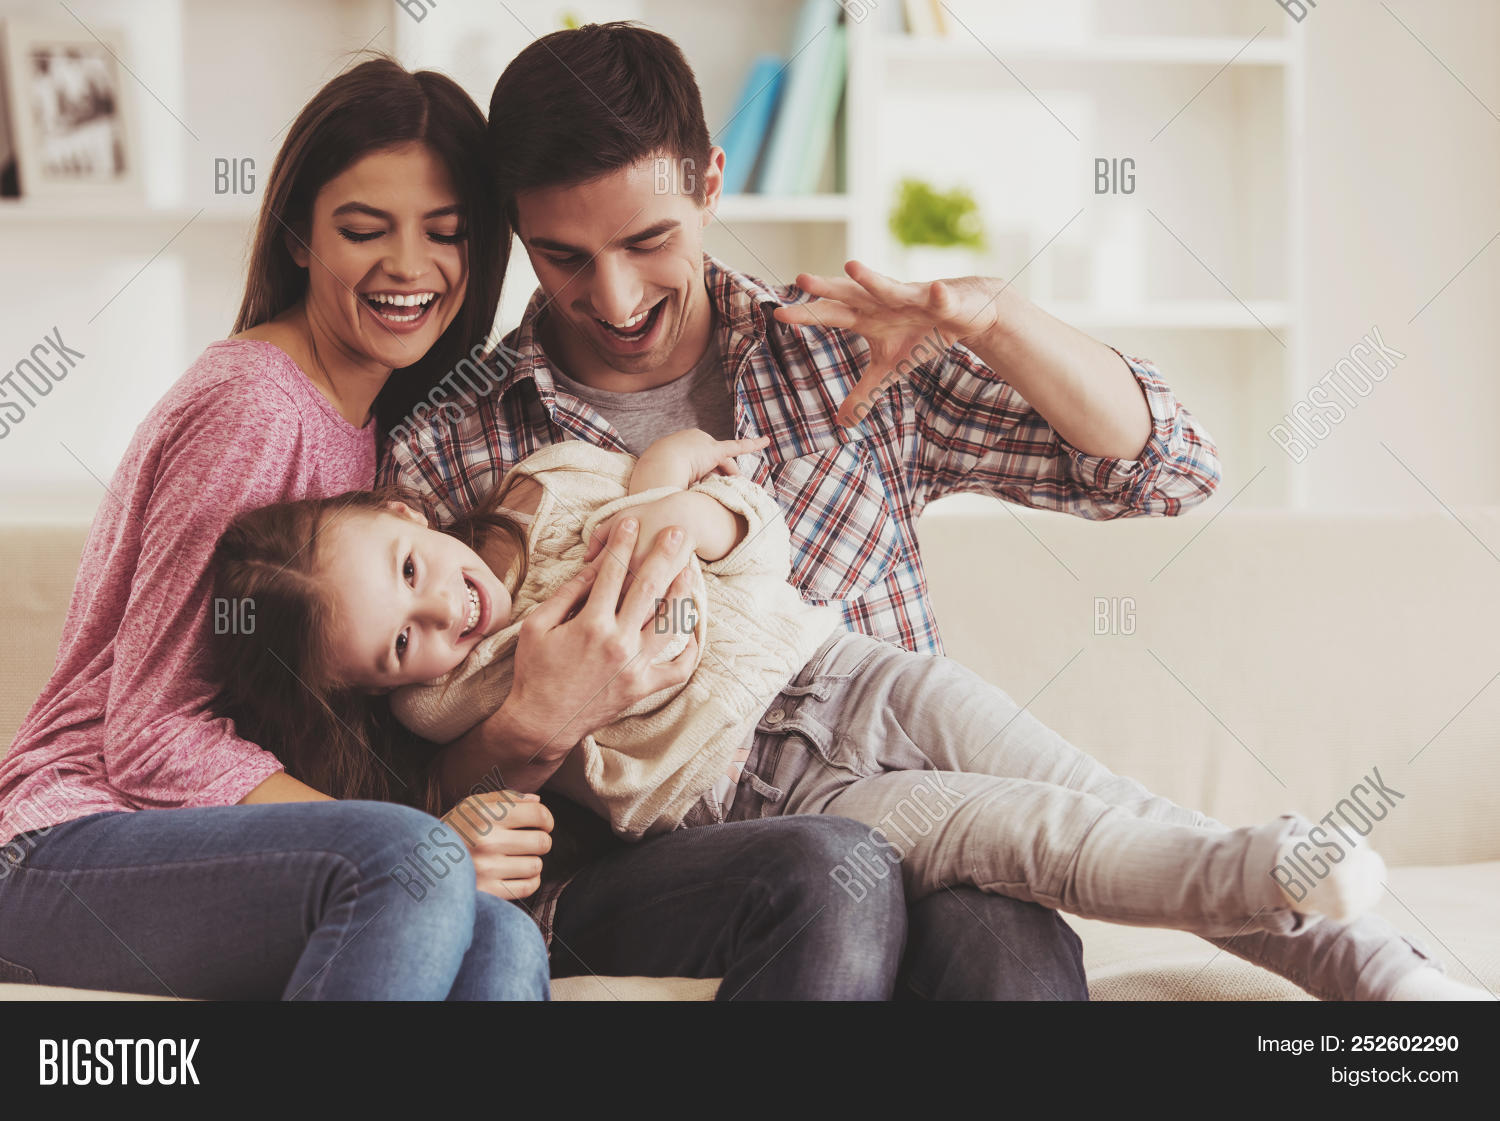 atrractive,child,childhood,concept,couple,daughter,family,father,female,flat,fun,funny,future,girl,hands,happiness,happy,house,hugging,huggs,indoors,interior,joy,joyful,kid,laing,leisure,lifestyle,little,living,love,lover,man,merried,mother,parents,people,playing,portrait,room,sitting,smile,sofa,together,woman,young